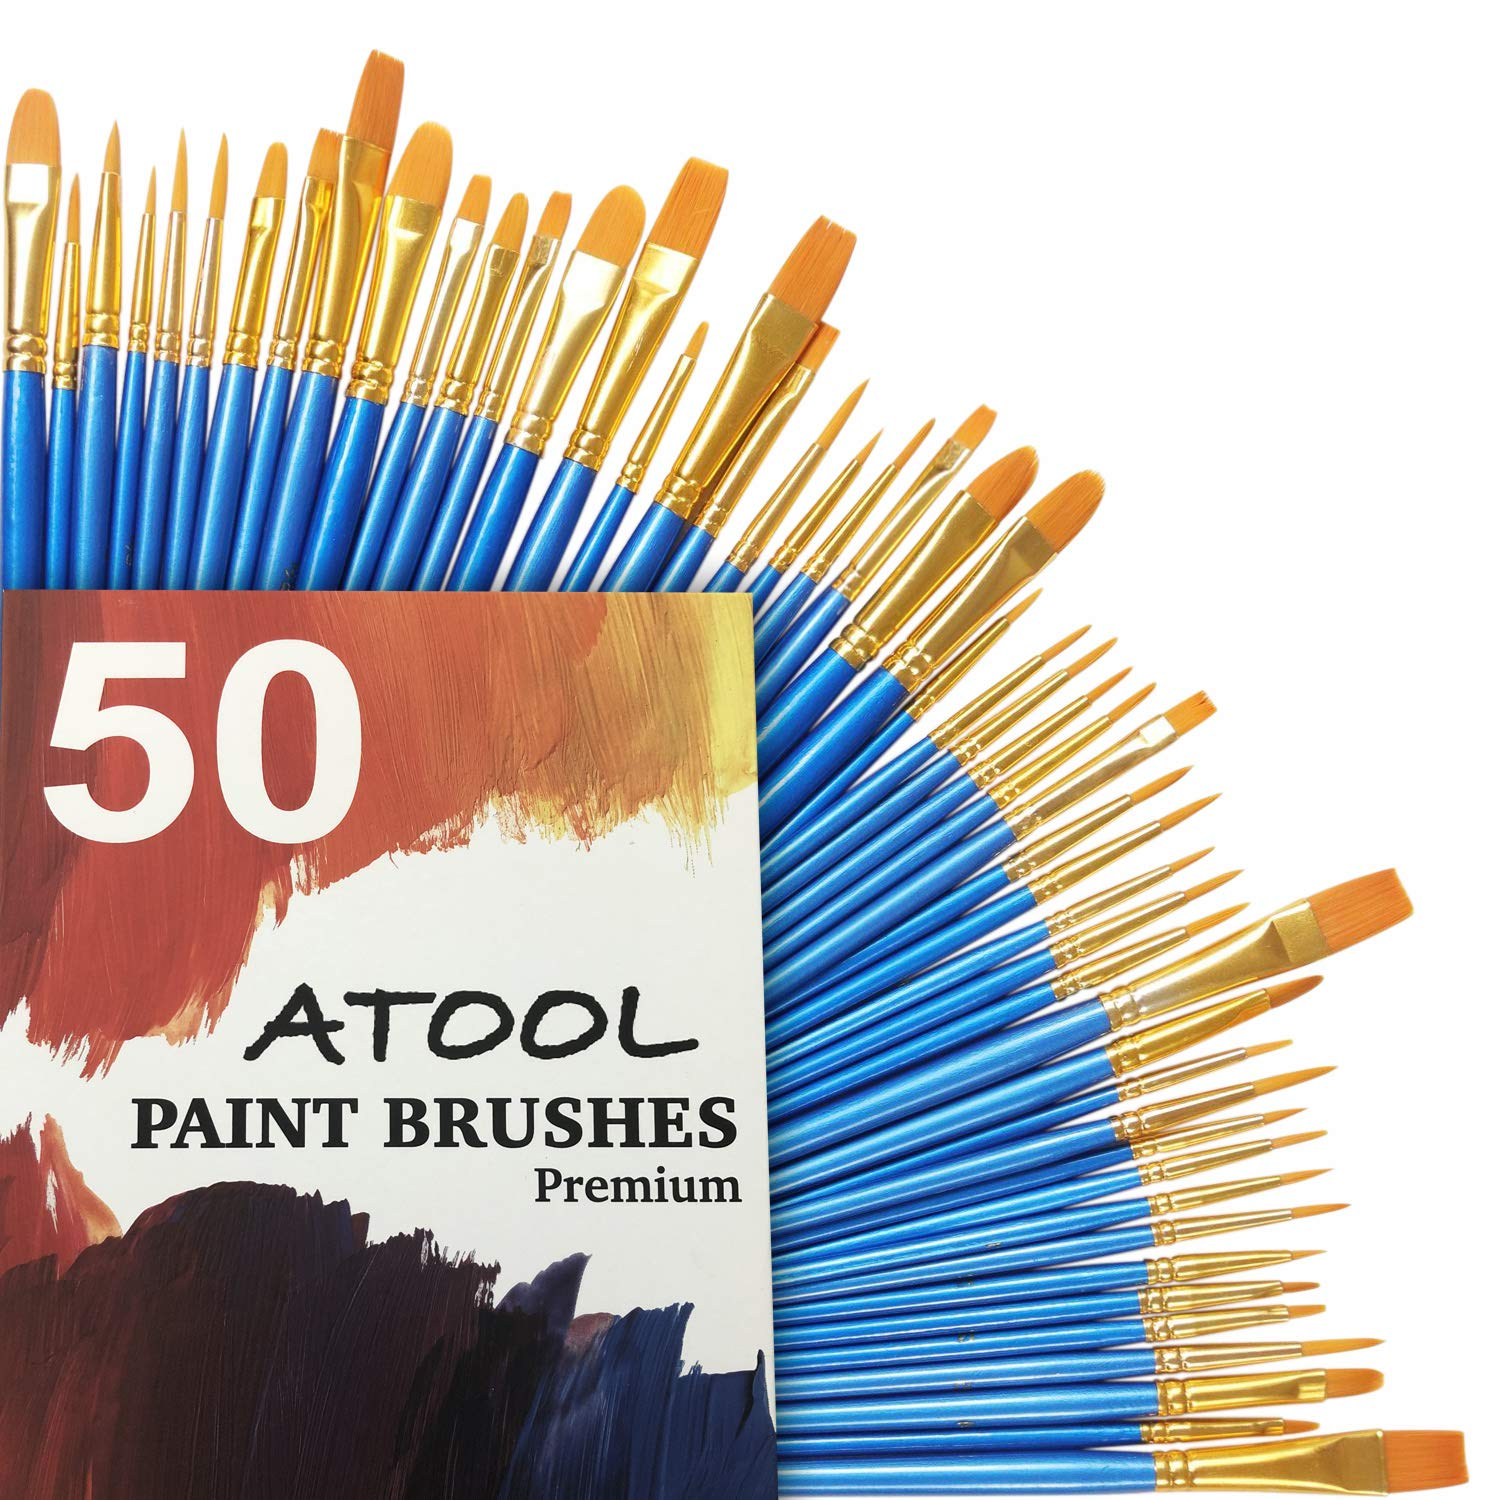 Acrylic Paint Brush Set, 5 Packs / 50 pcs Nylon Hair Brushes for All Purpose Oil Watercolor Painting Artist Professional Kits by ATool